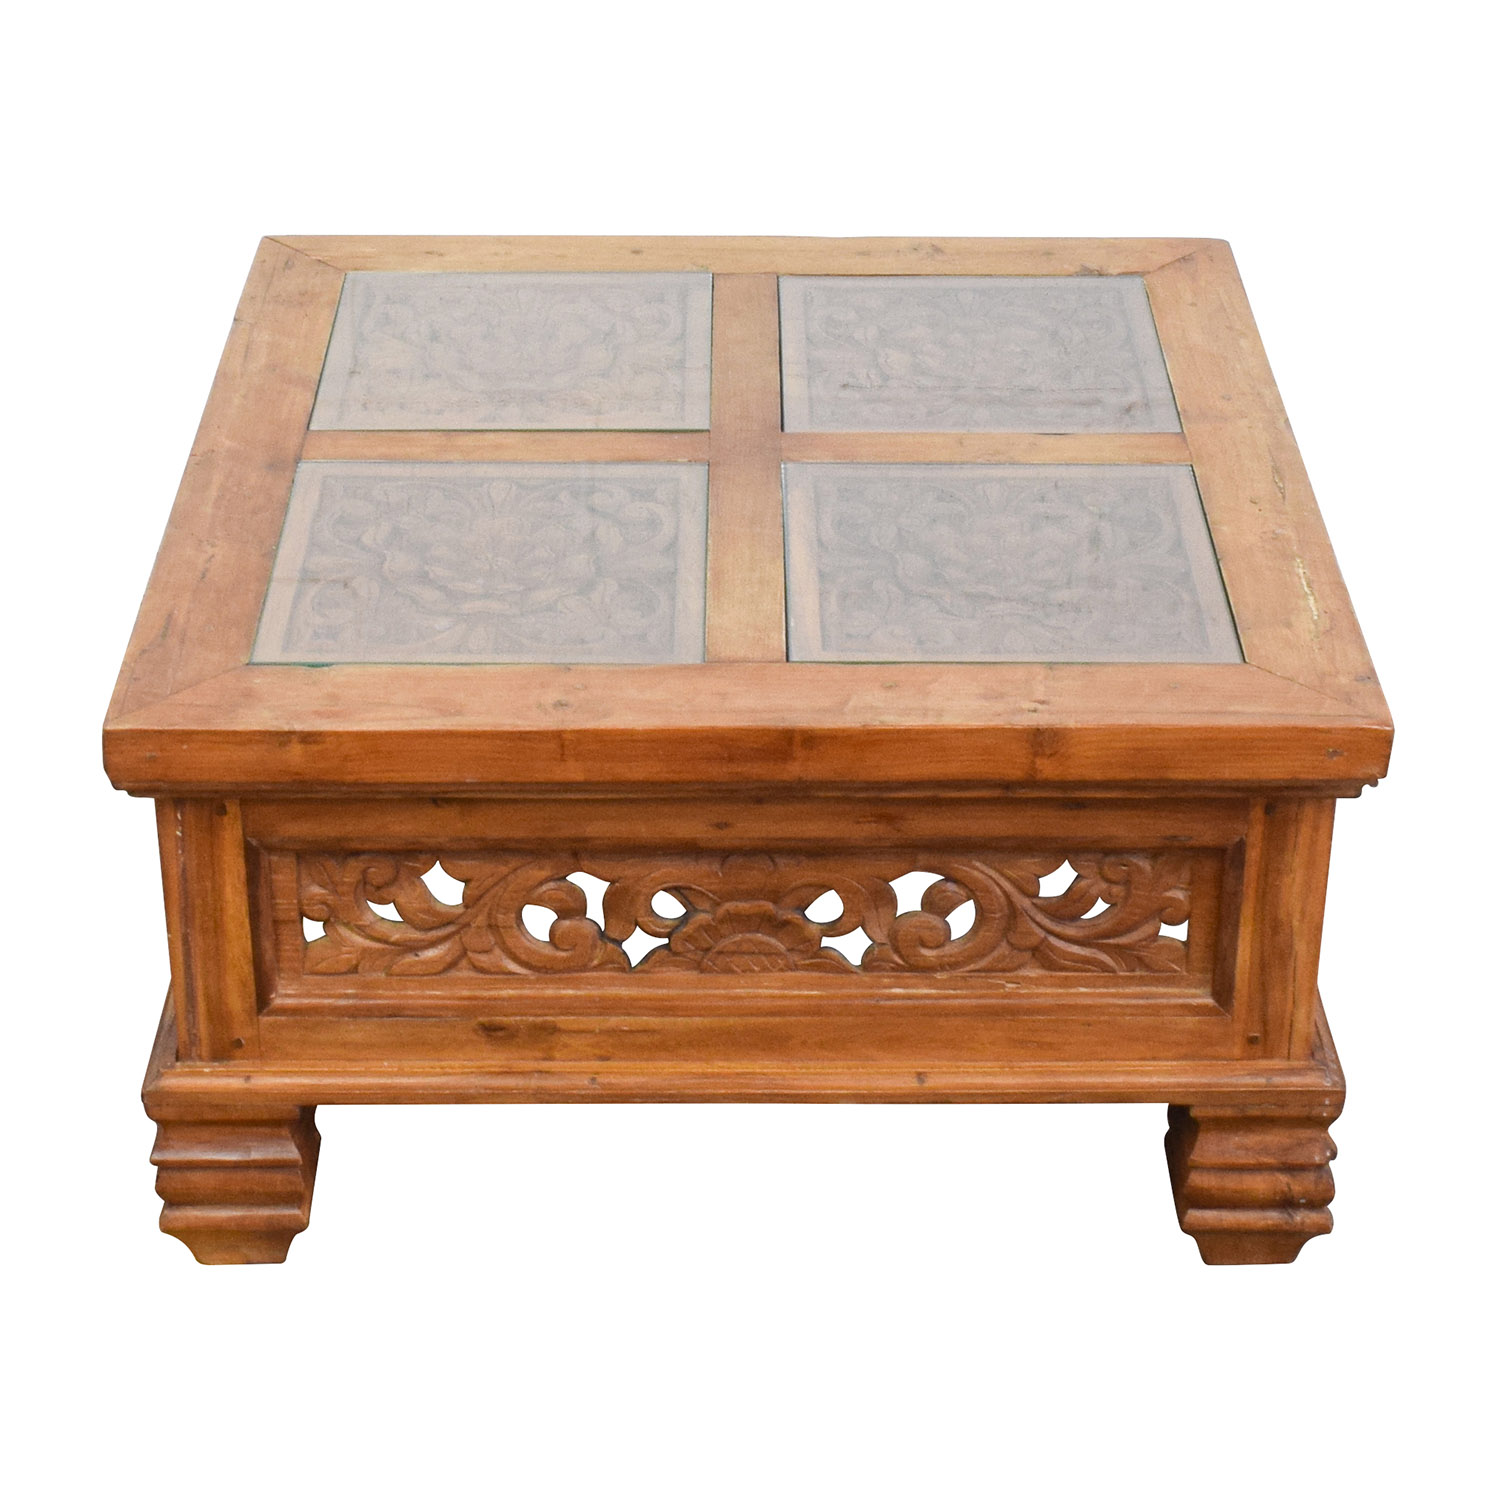 77 off teak carved coffee table with glass top tables for Coffee tables glass top